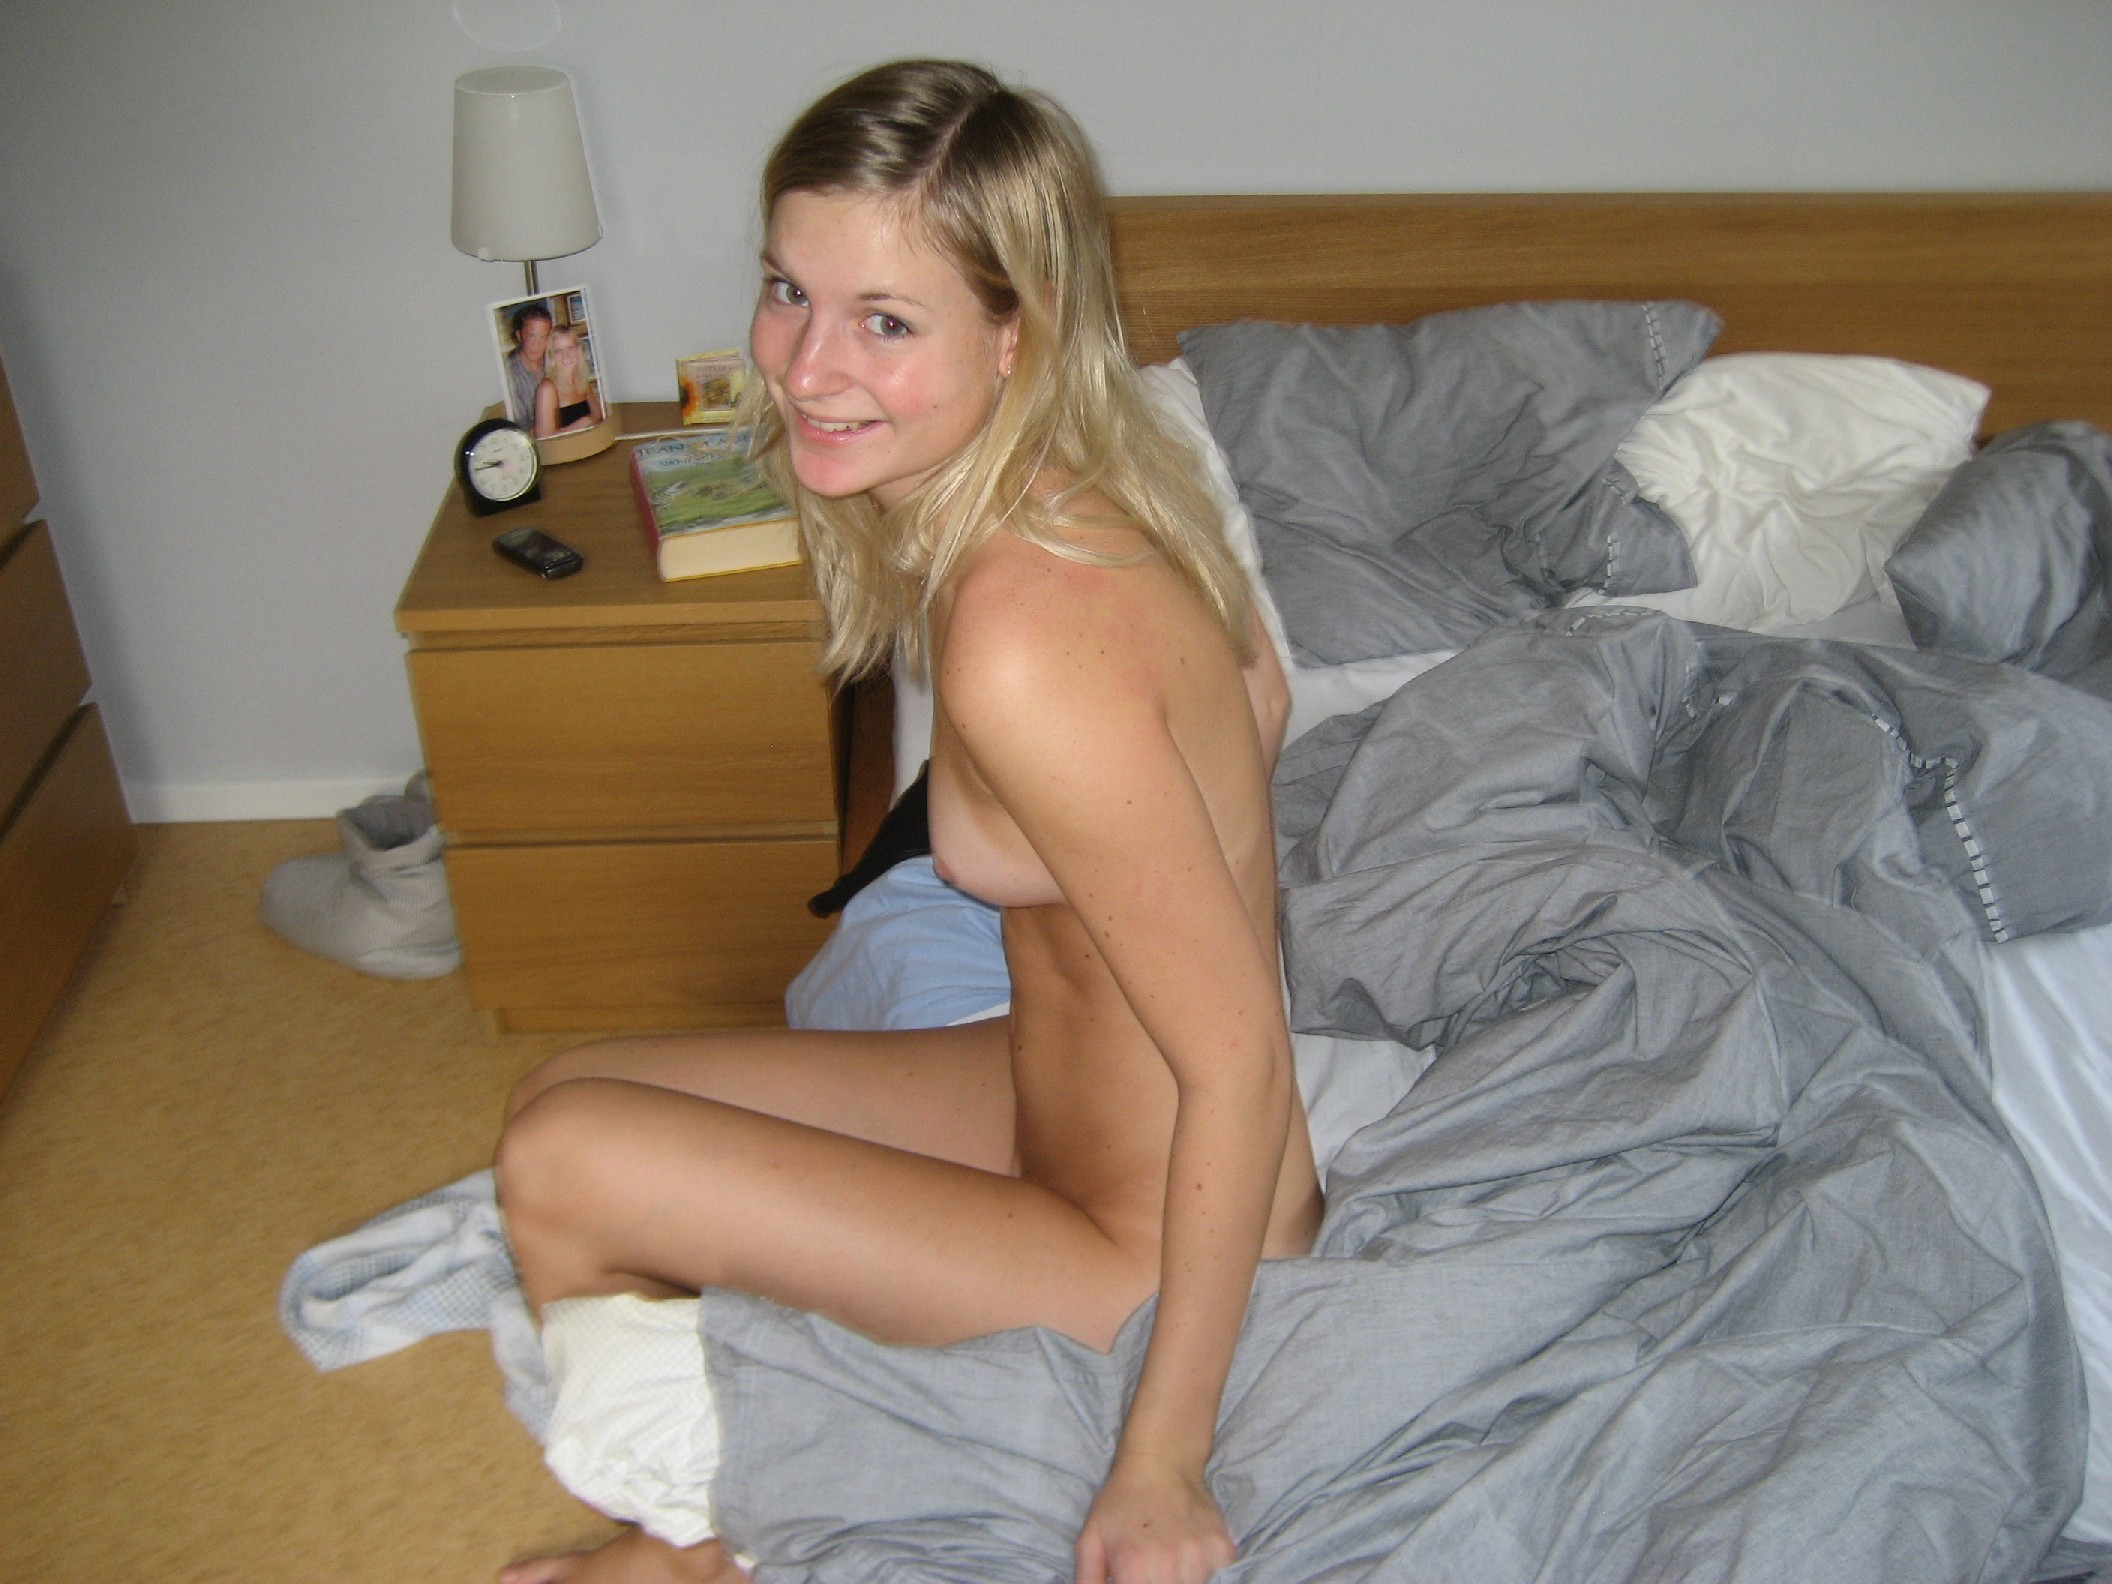 Swedish Blonde Girls Naked - Xxx Photo-1355